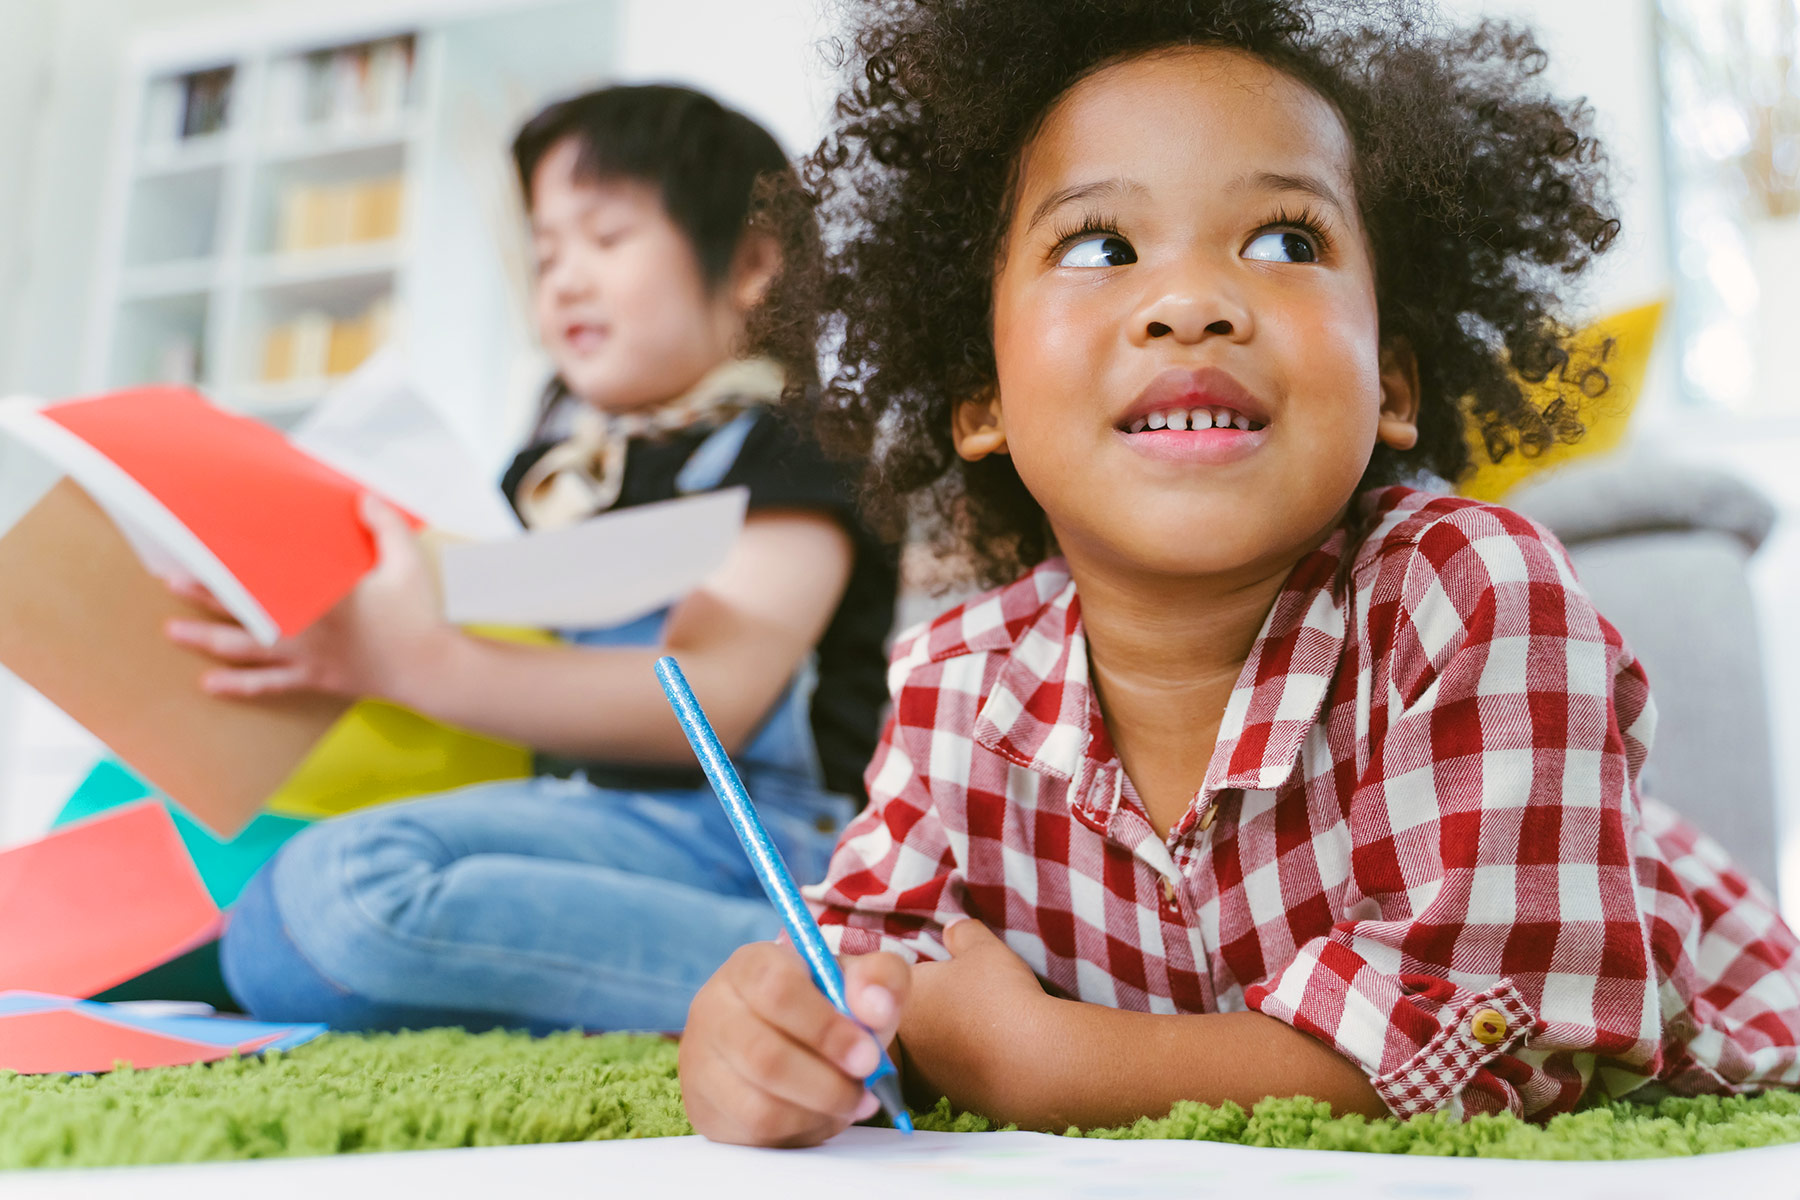 Poverty May Up Black Children's Health Risks Early